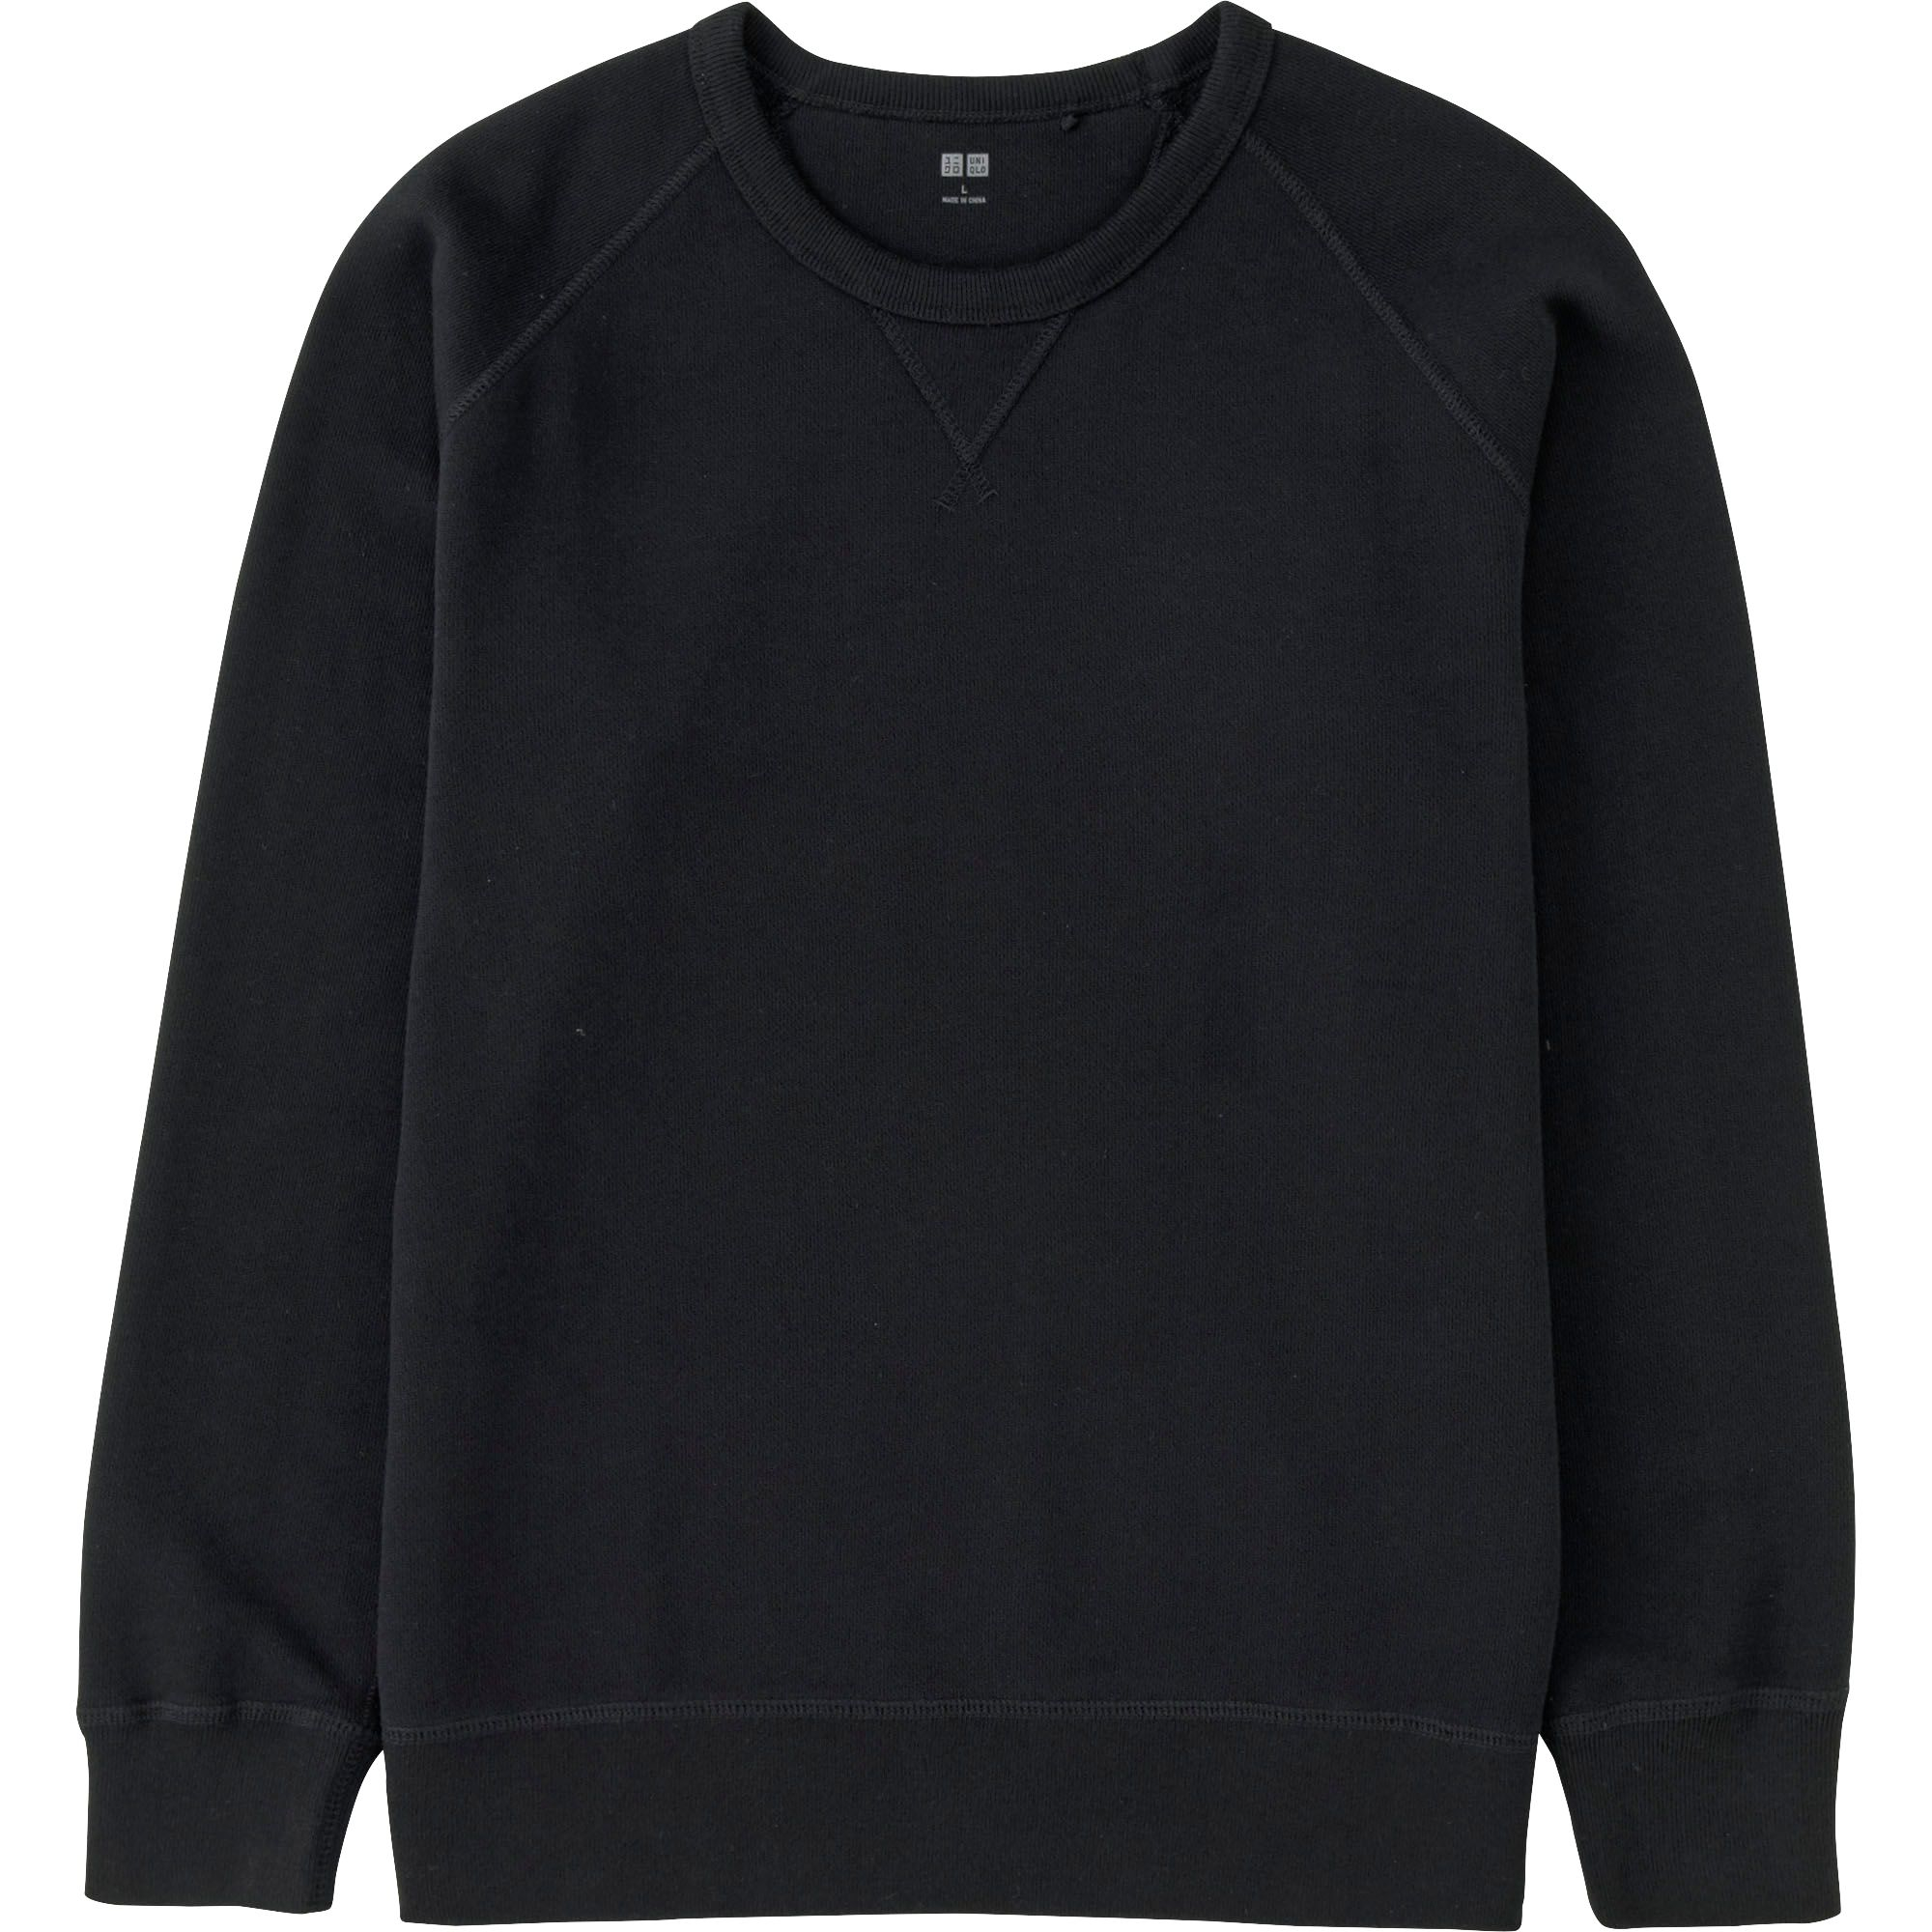 Uniqlo sweatshirt sizing sweater jeans and boots for Uniqlo t shirt sizing